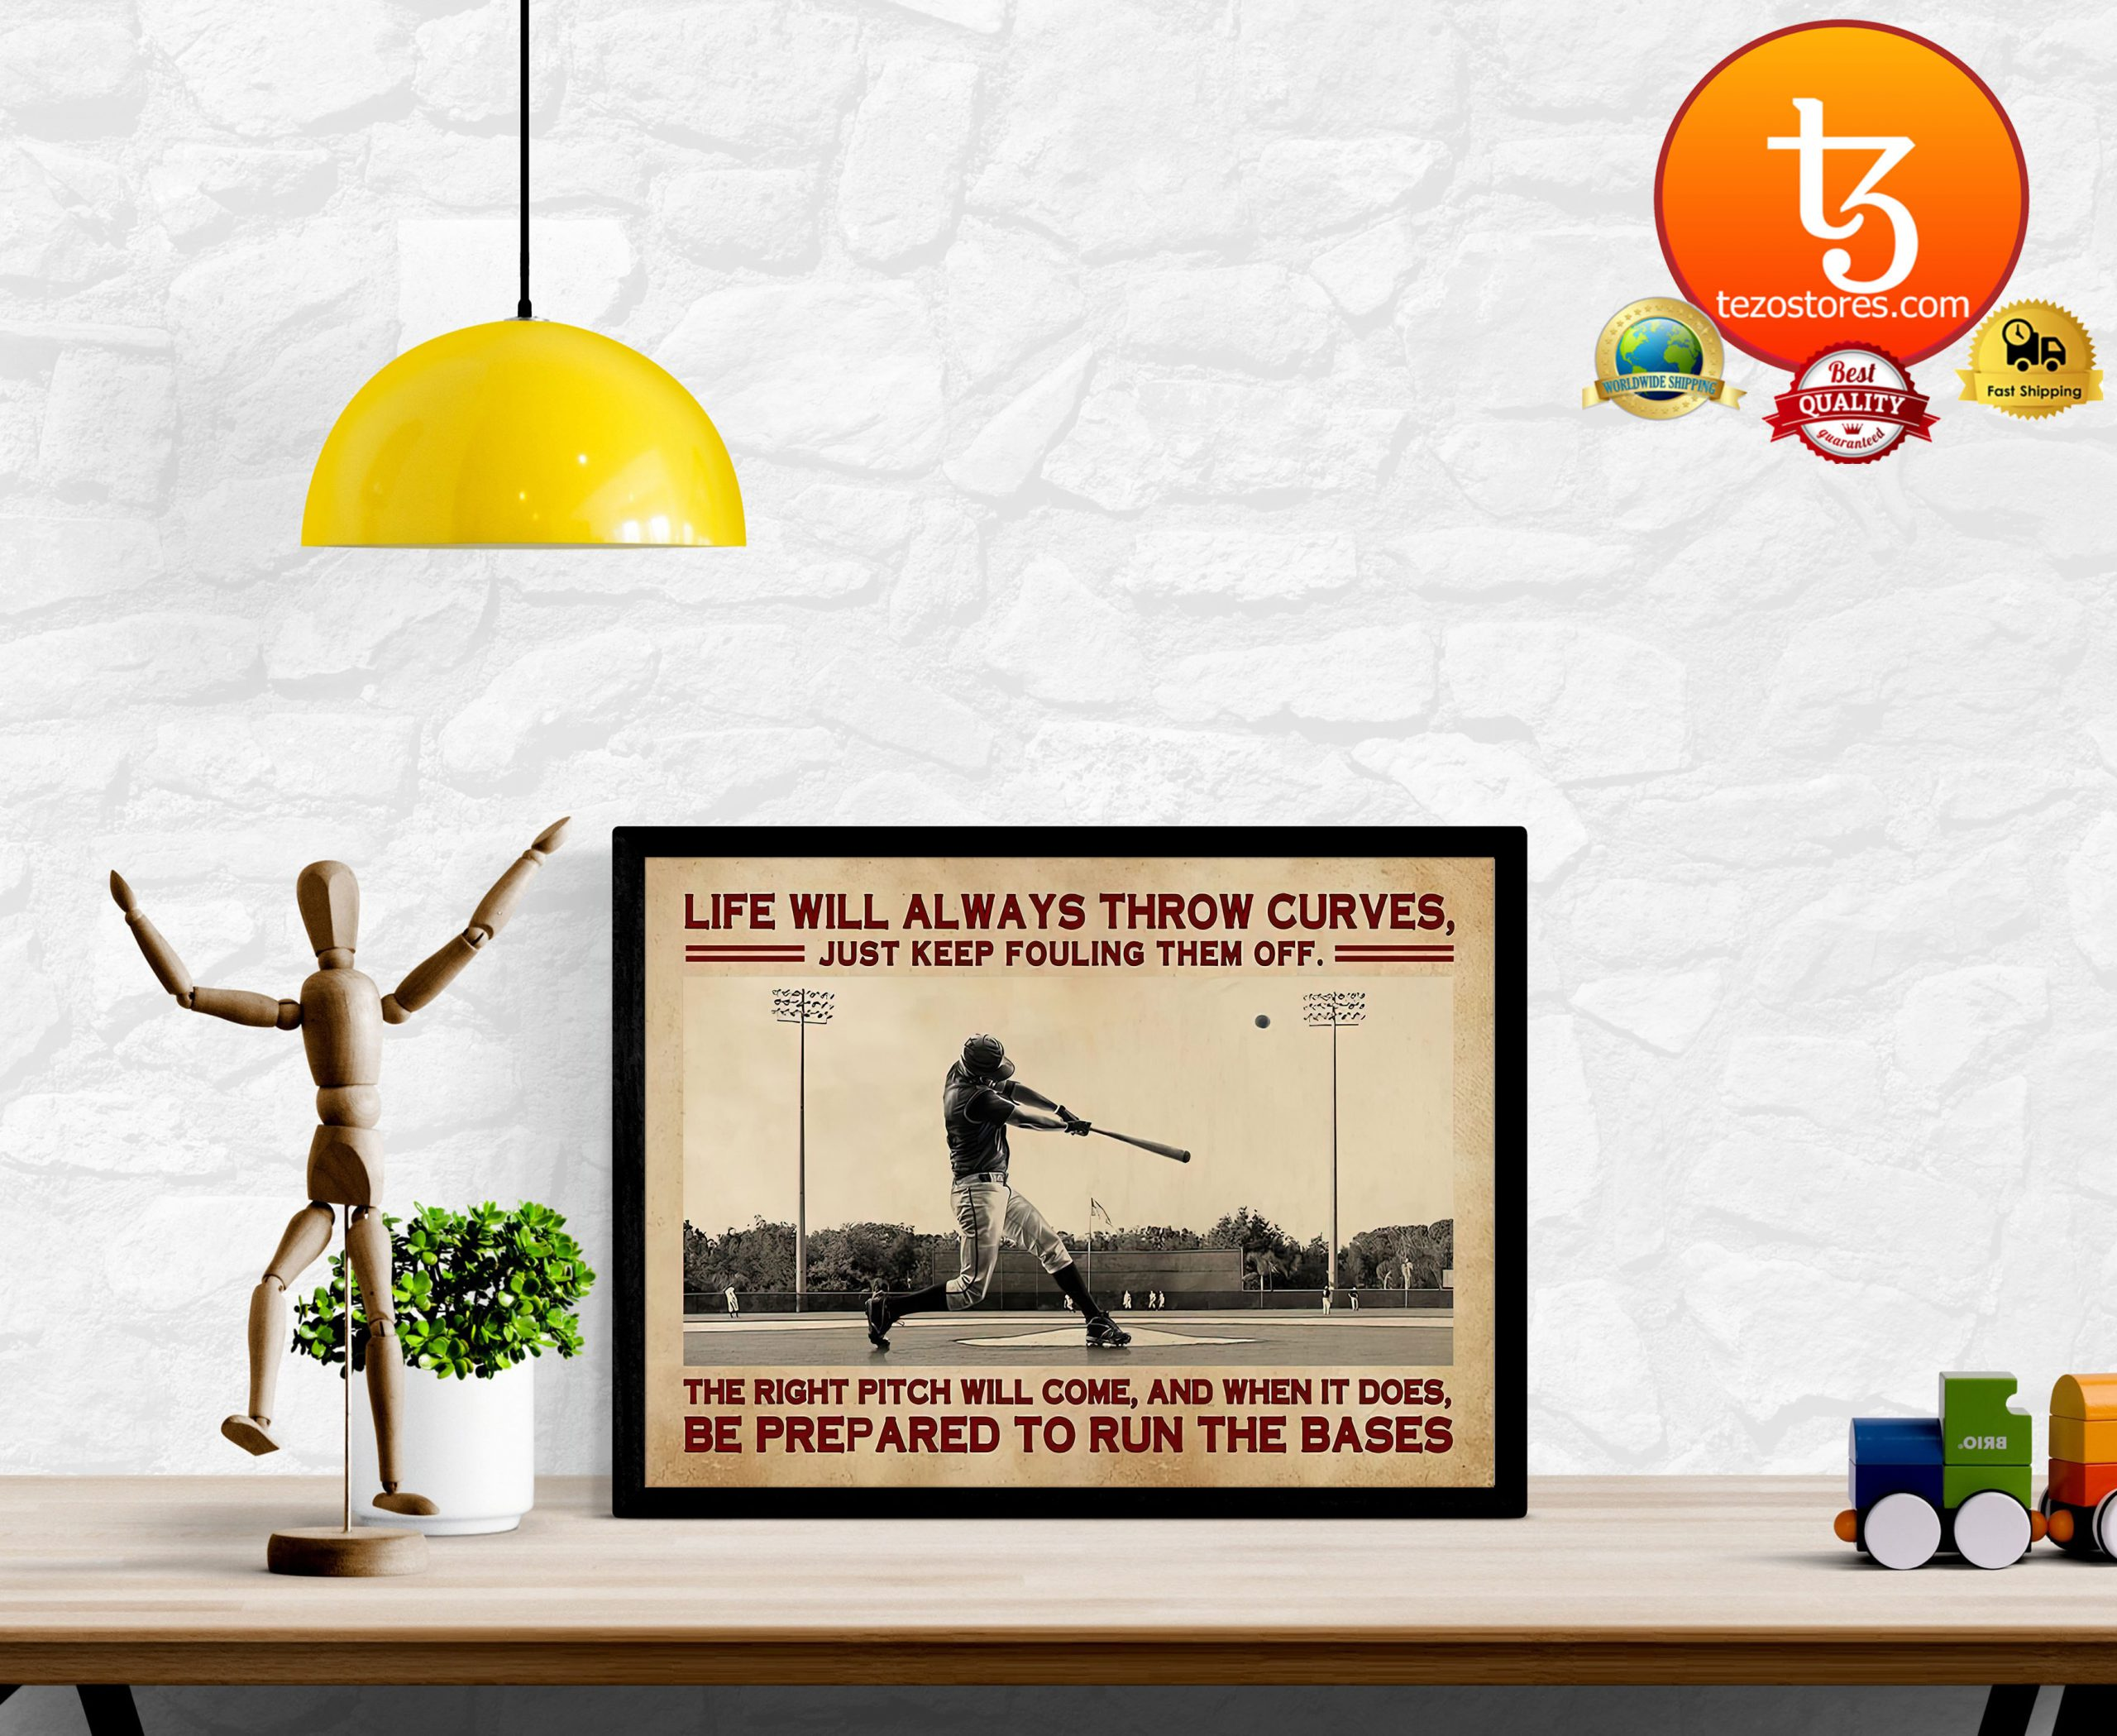 Baseball life will always throw curves just keep fouling them off poster2